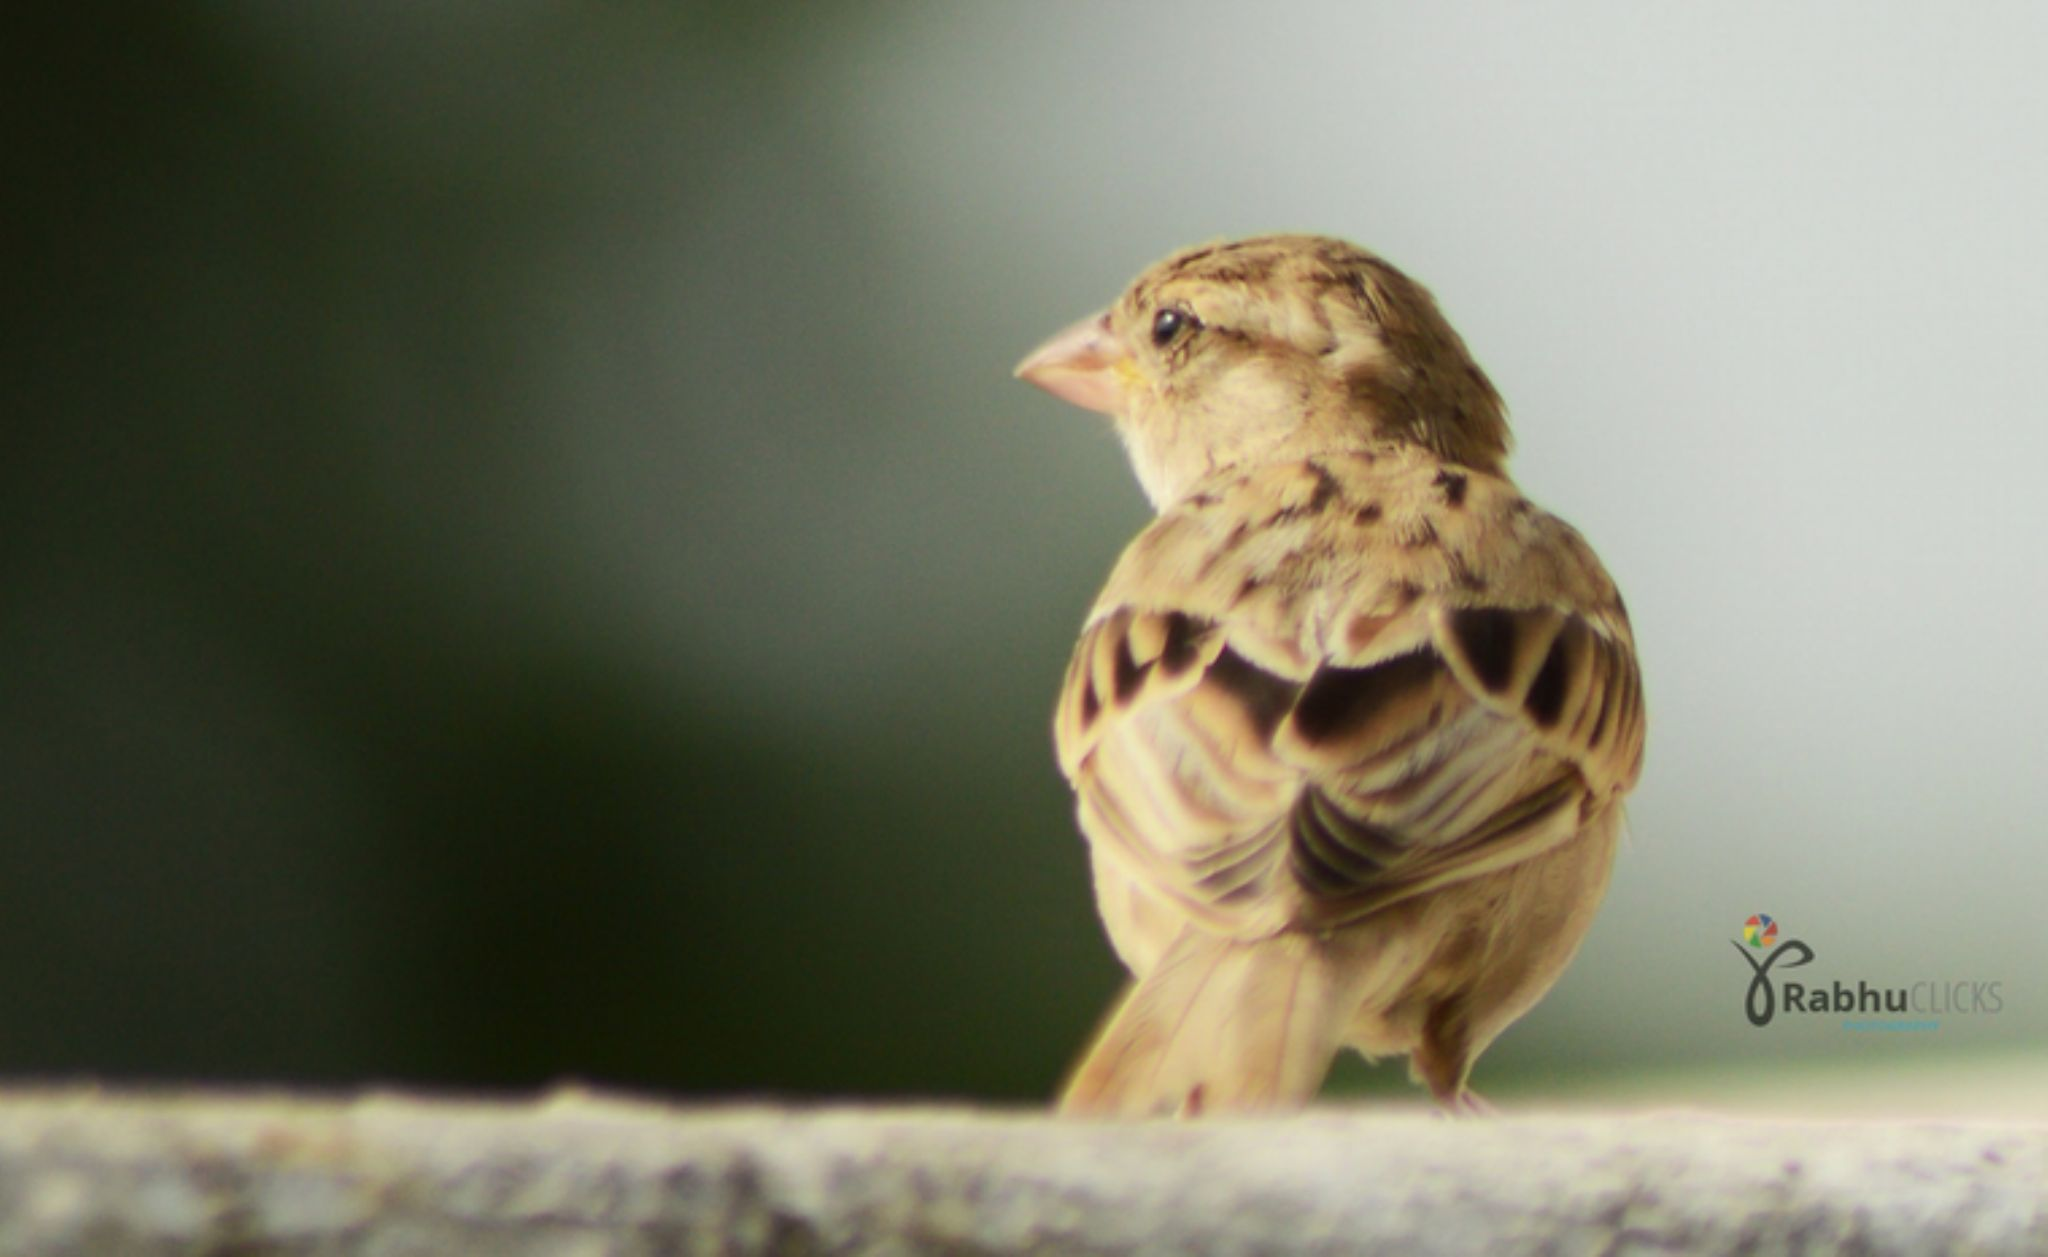 Sparrow by prabhuviswa